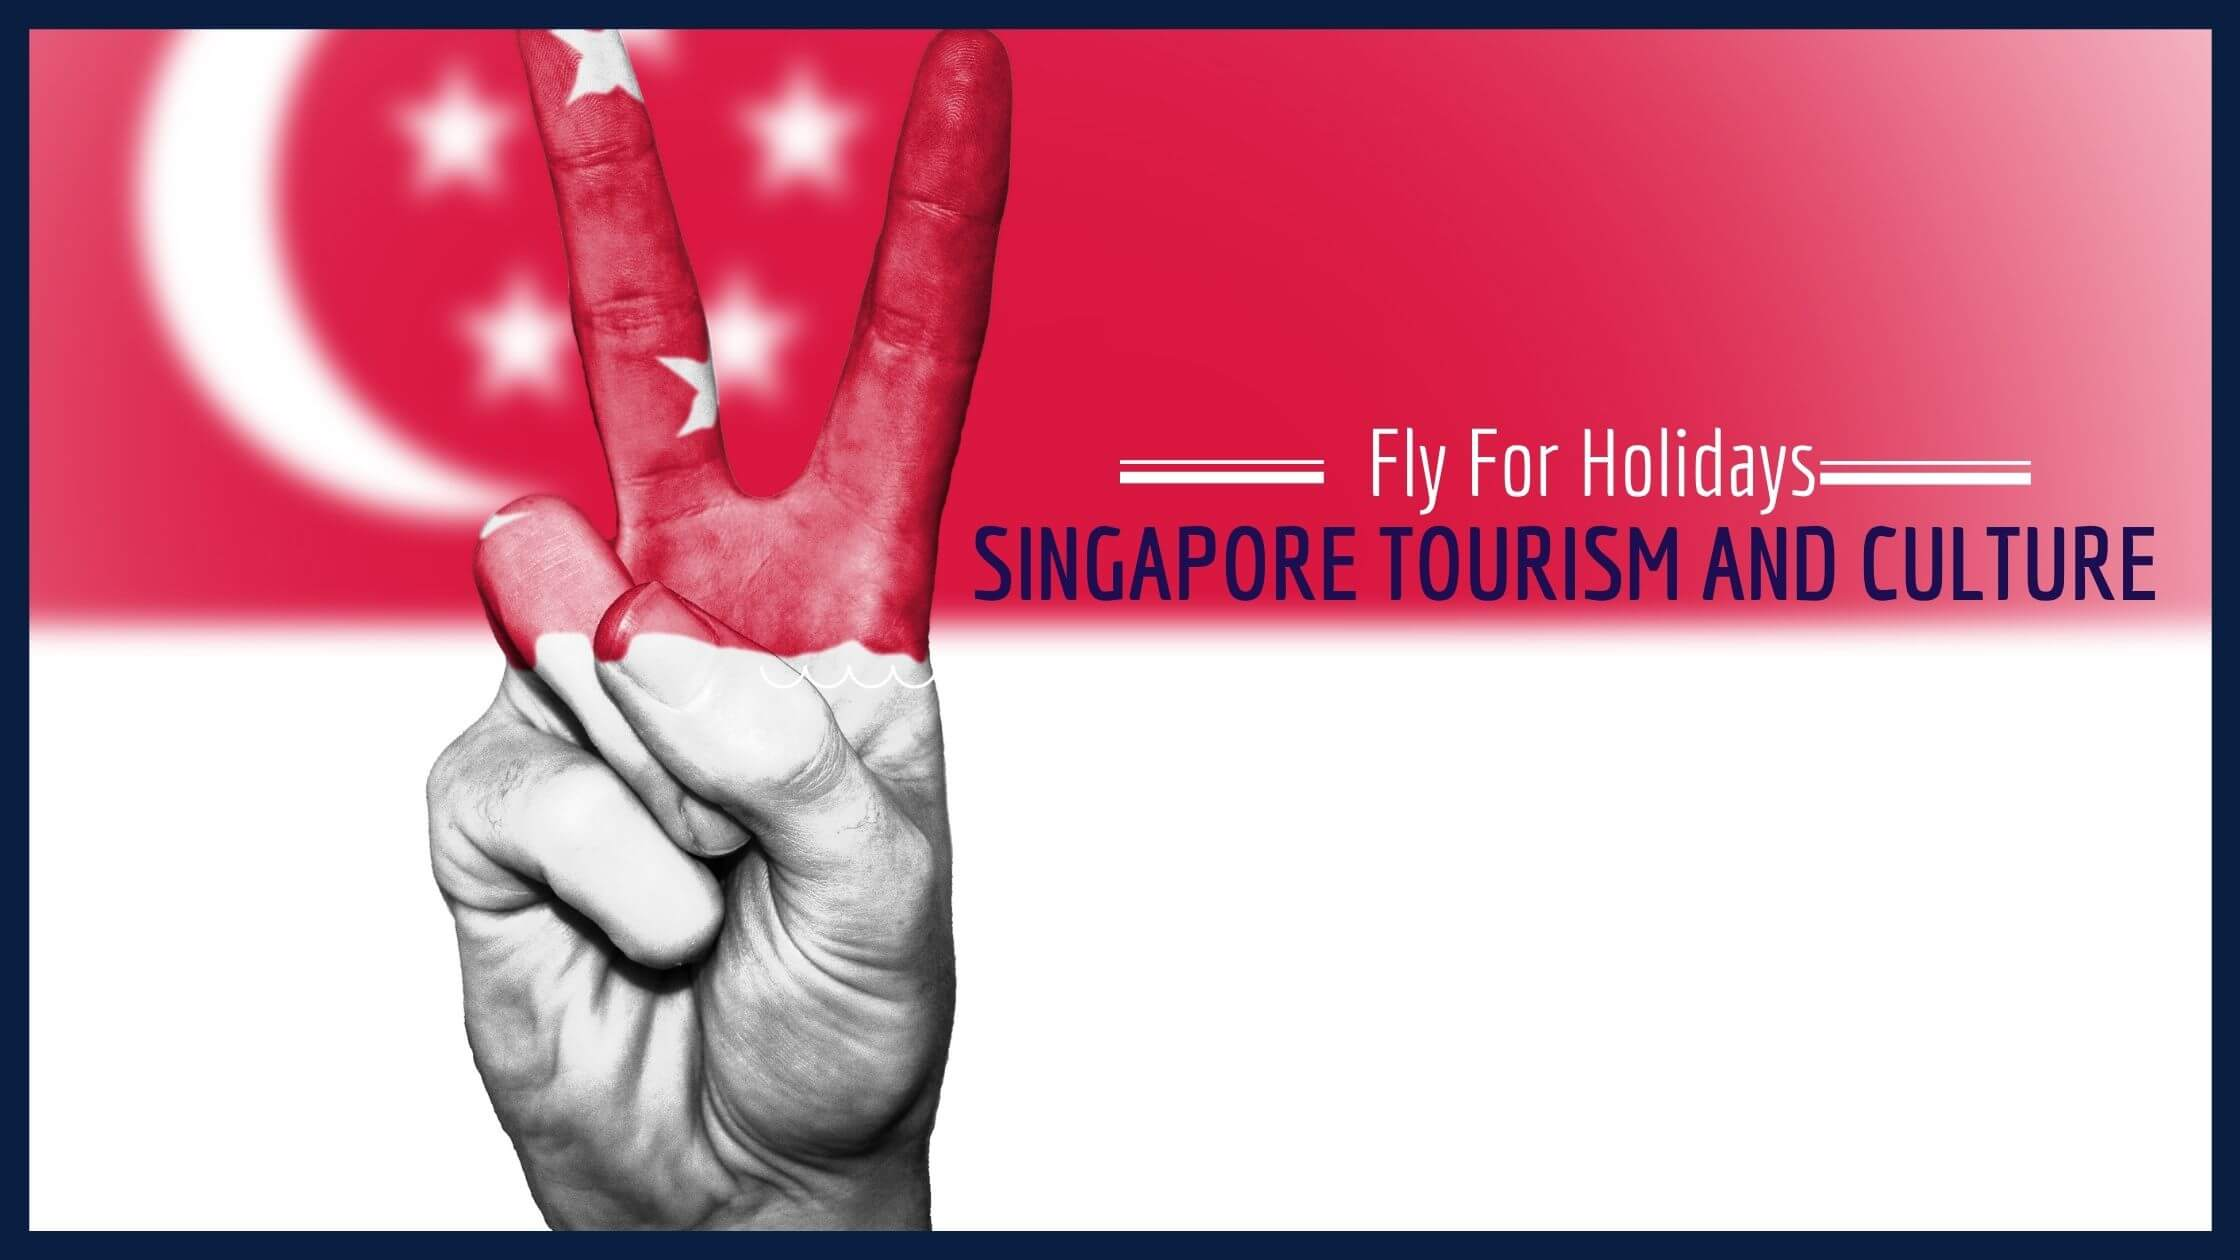 Singapore Tourism and Culture - Fly For Holidays